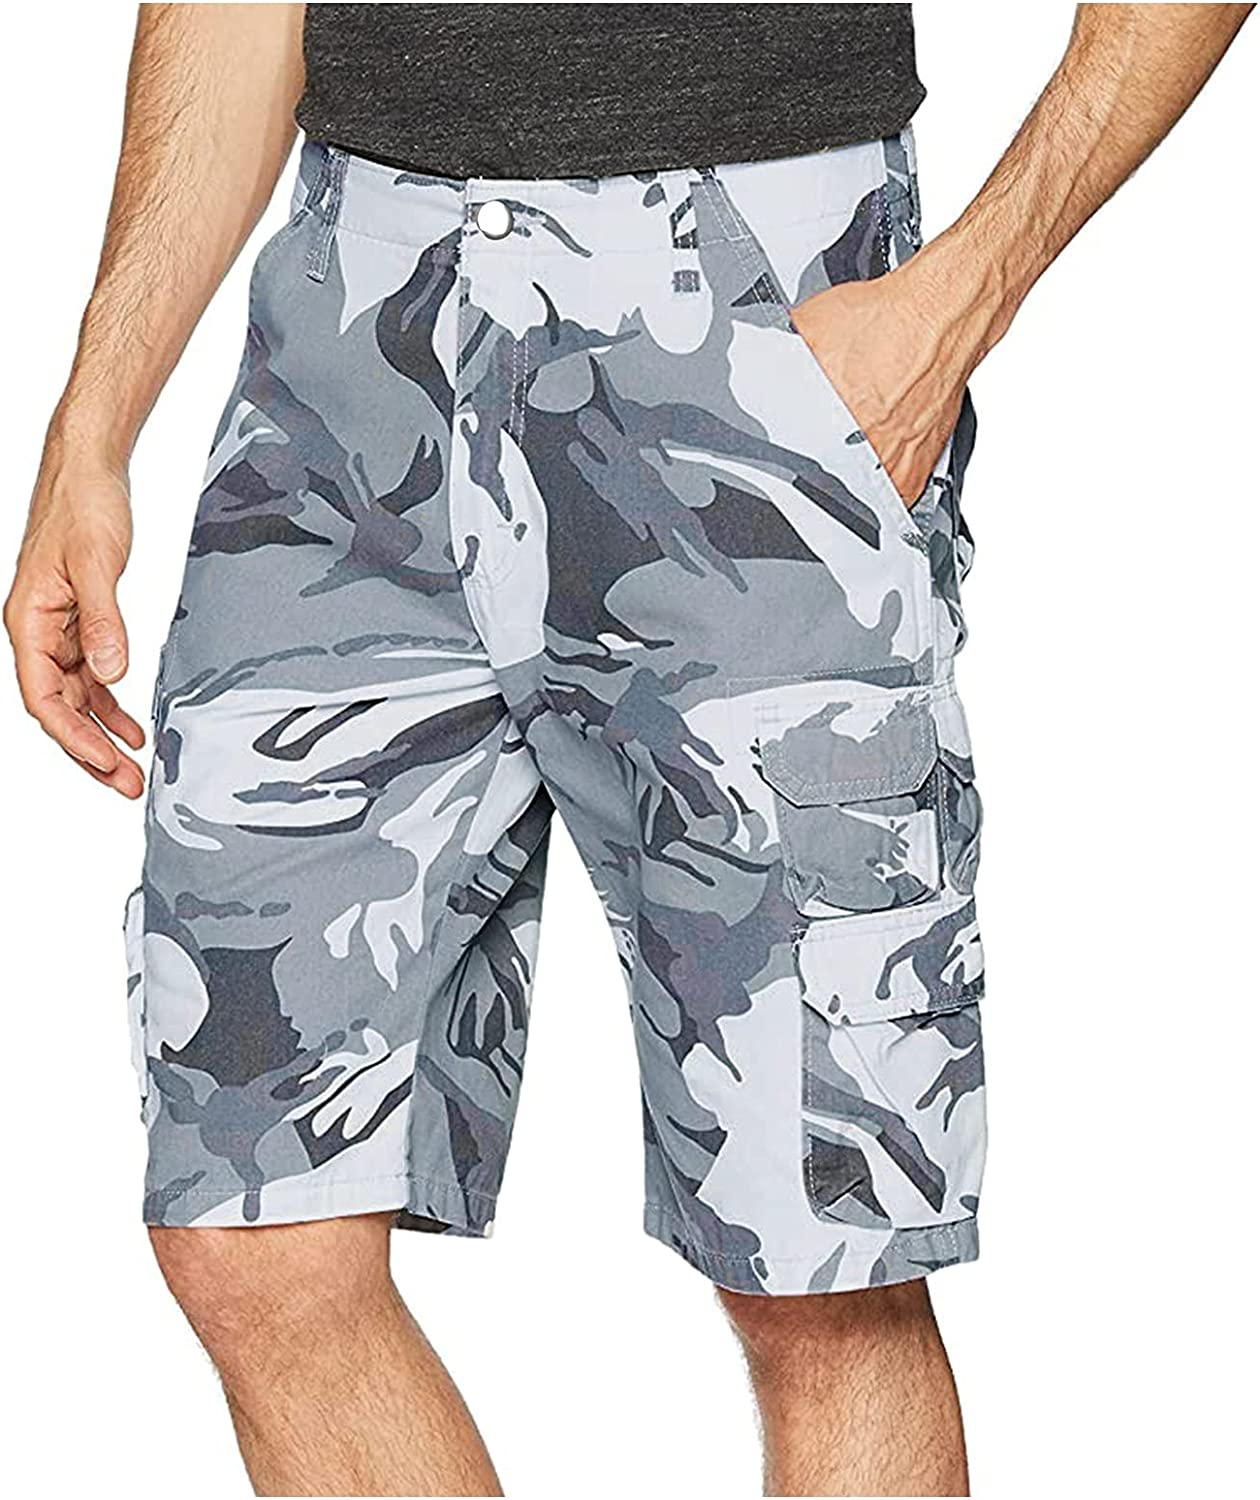 Men's Camouflage Casual Shorts Knee Length Multi-Pocket Cargo Shorts High Waist Tactical Shorts with Pockets - Limsea